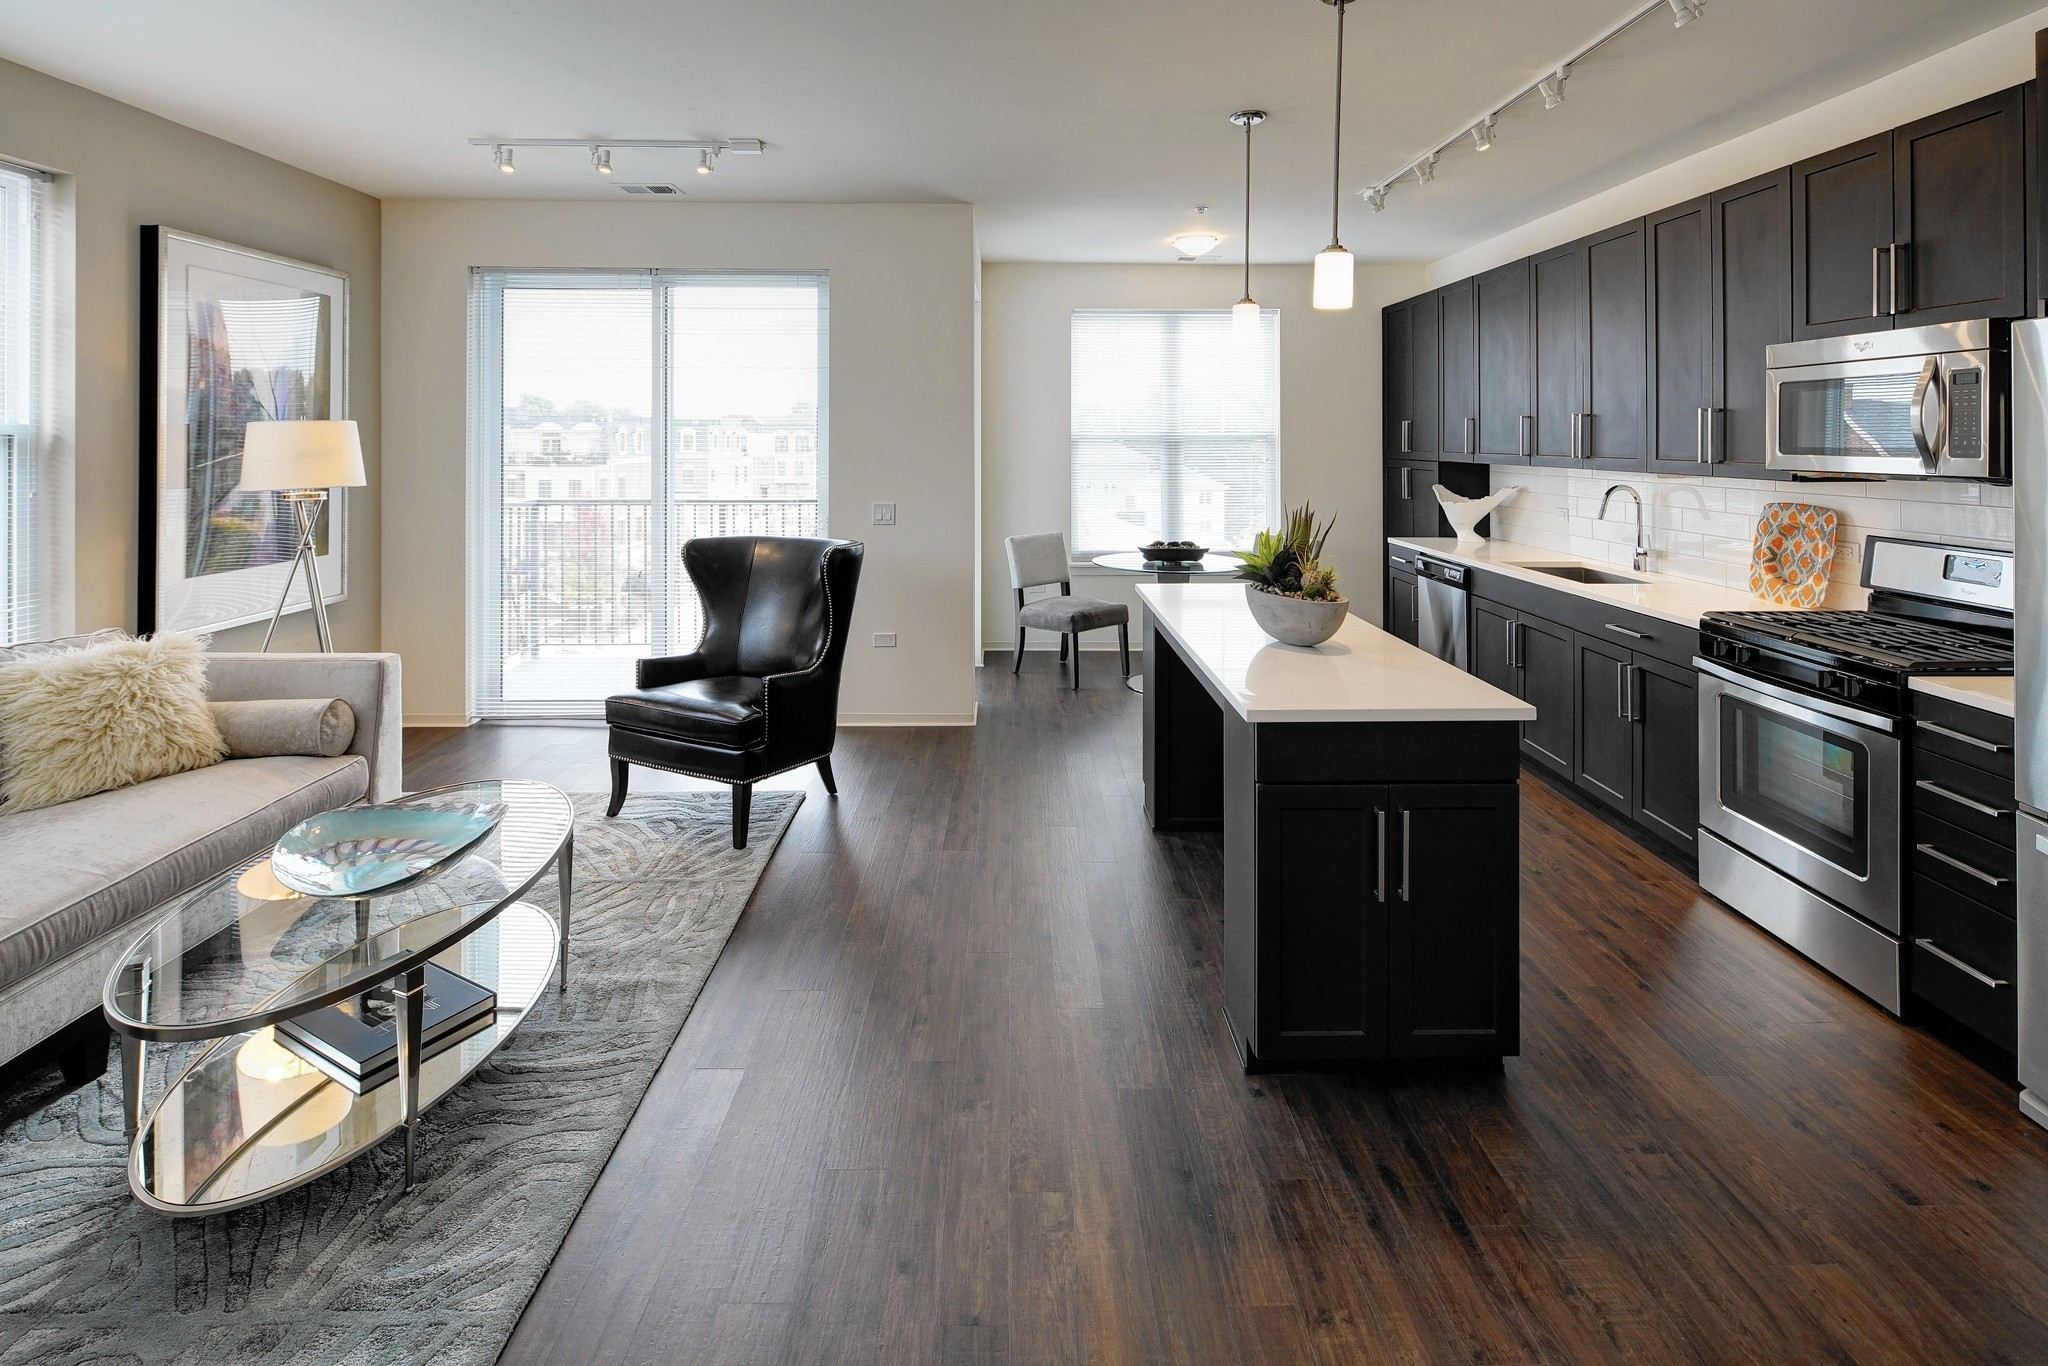 Downtown Wheatonu0027s Converted Courthouse District Welcomes Luxury Rentals    Chicago Tribune